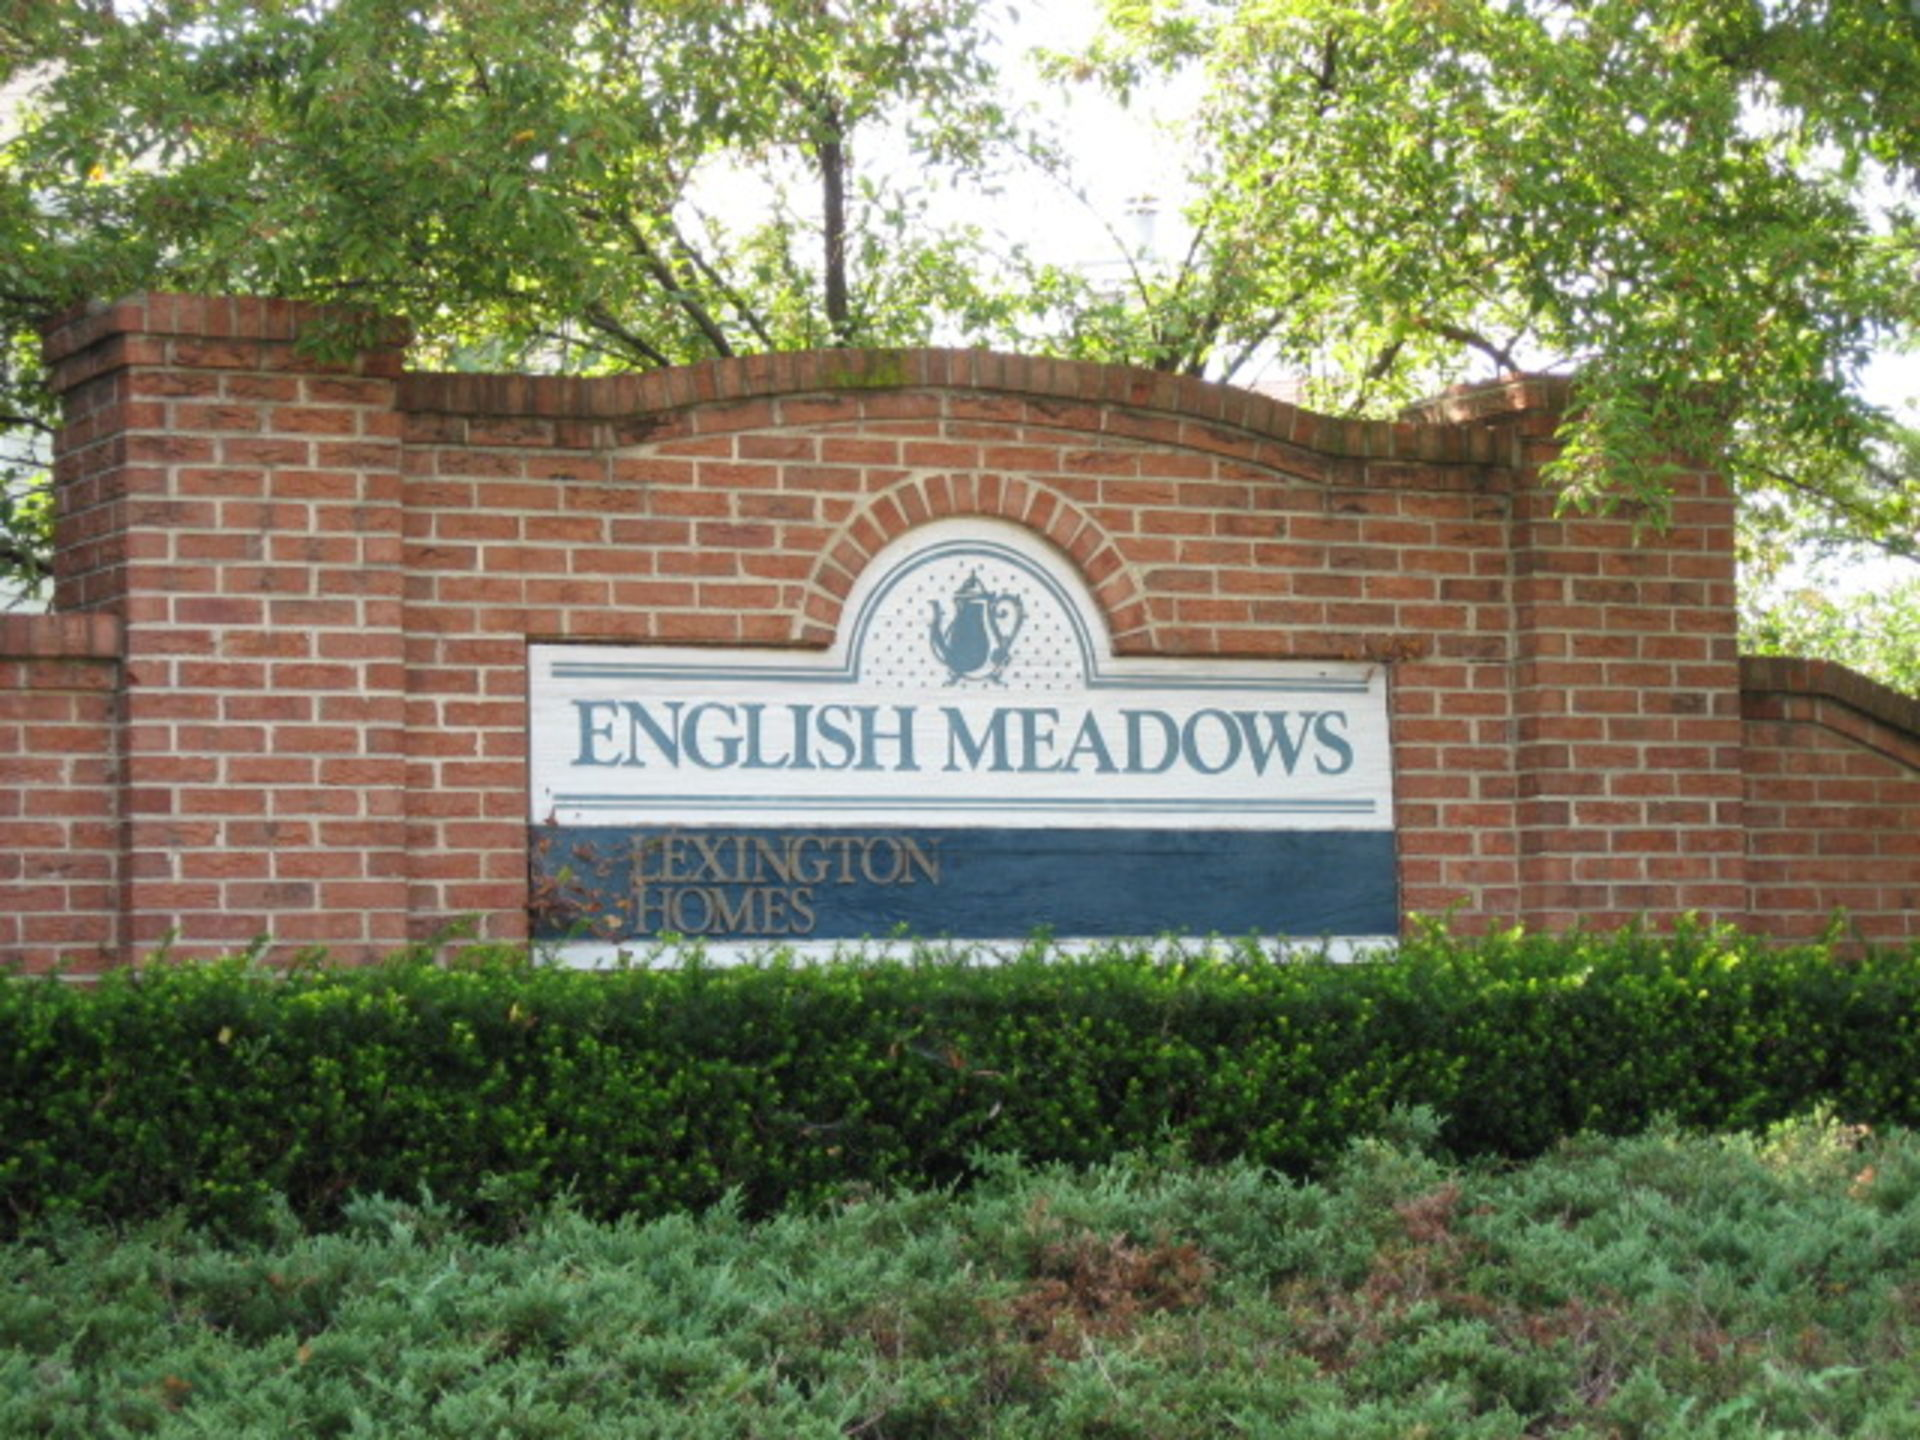 English Meadows and The Links of English Meadows Subdivisions in Grayslake IL  Real Estate Market Update – Feb 2017